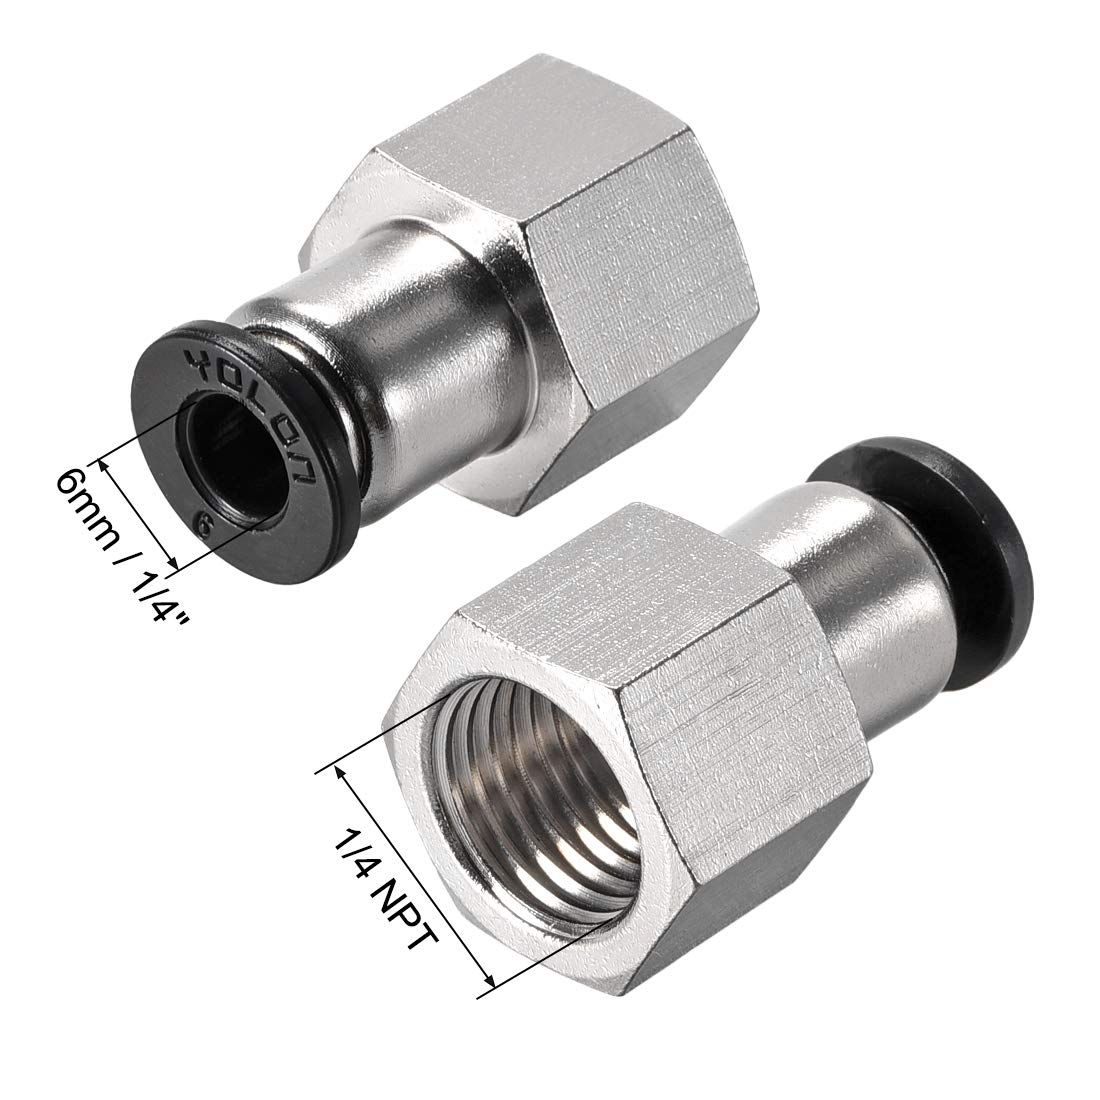 Straight Pneumatic Push to Quick Connect Fittings 1//4NPT x 6mm Silver Tone 3pcs